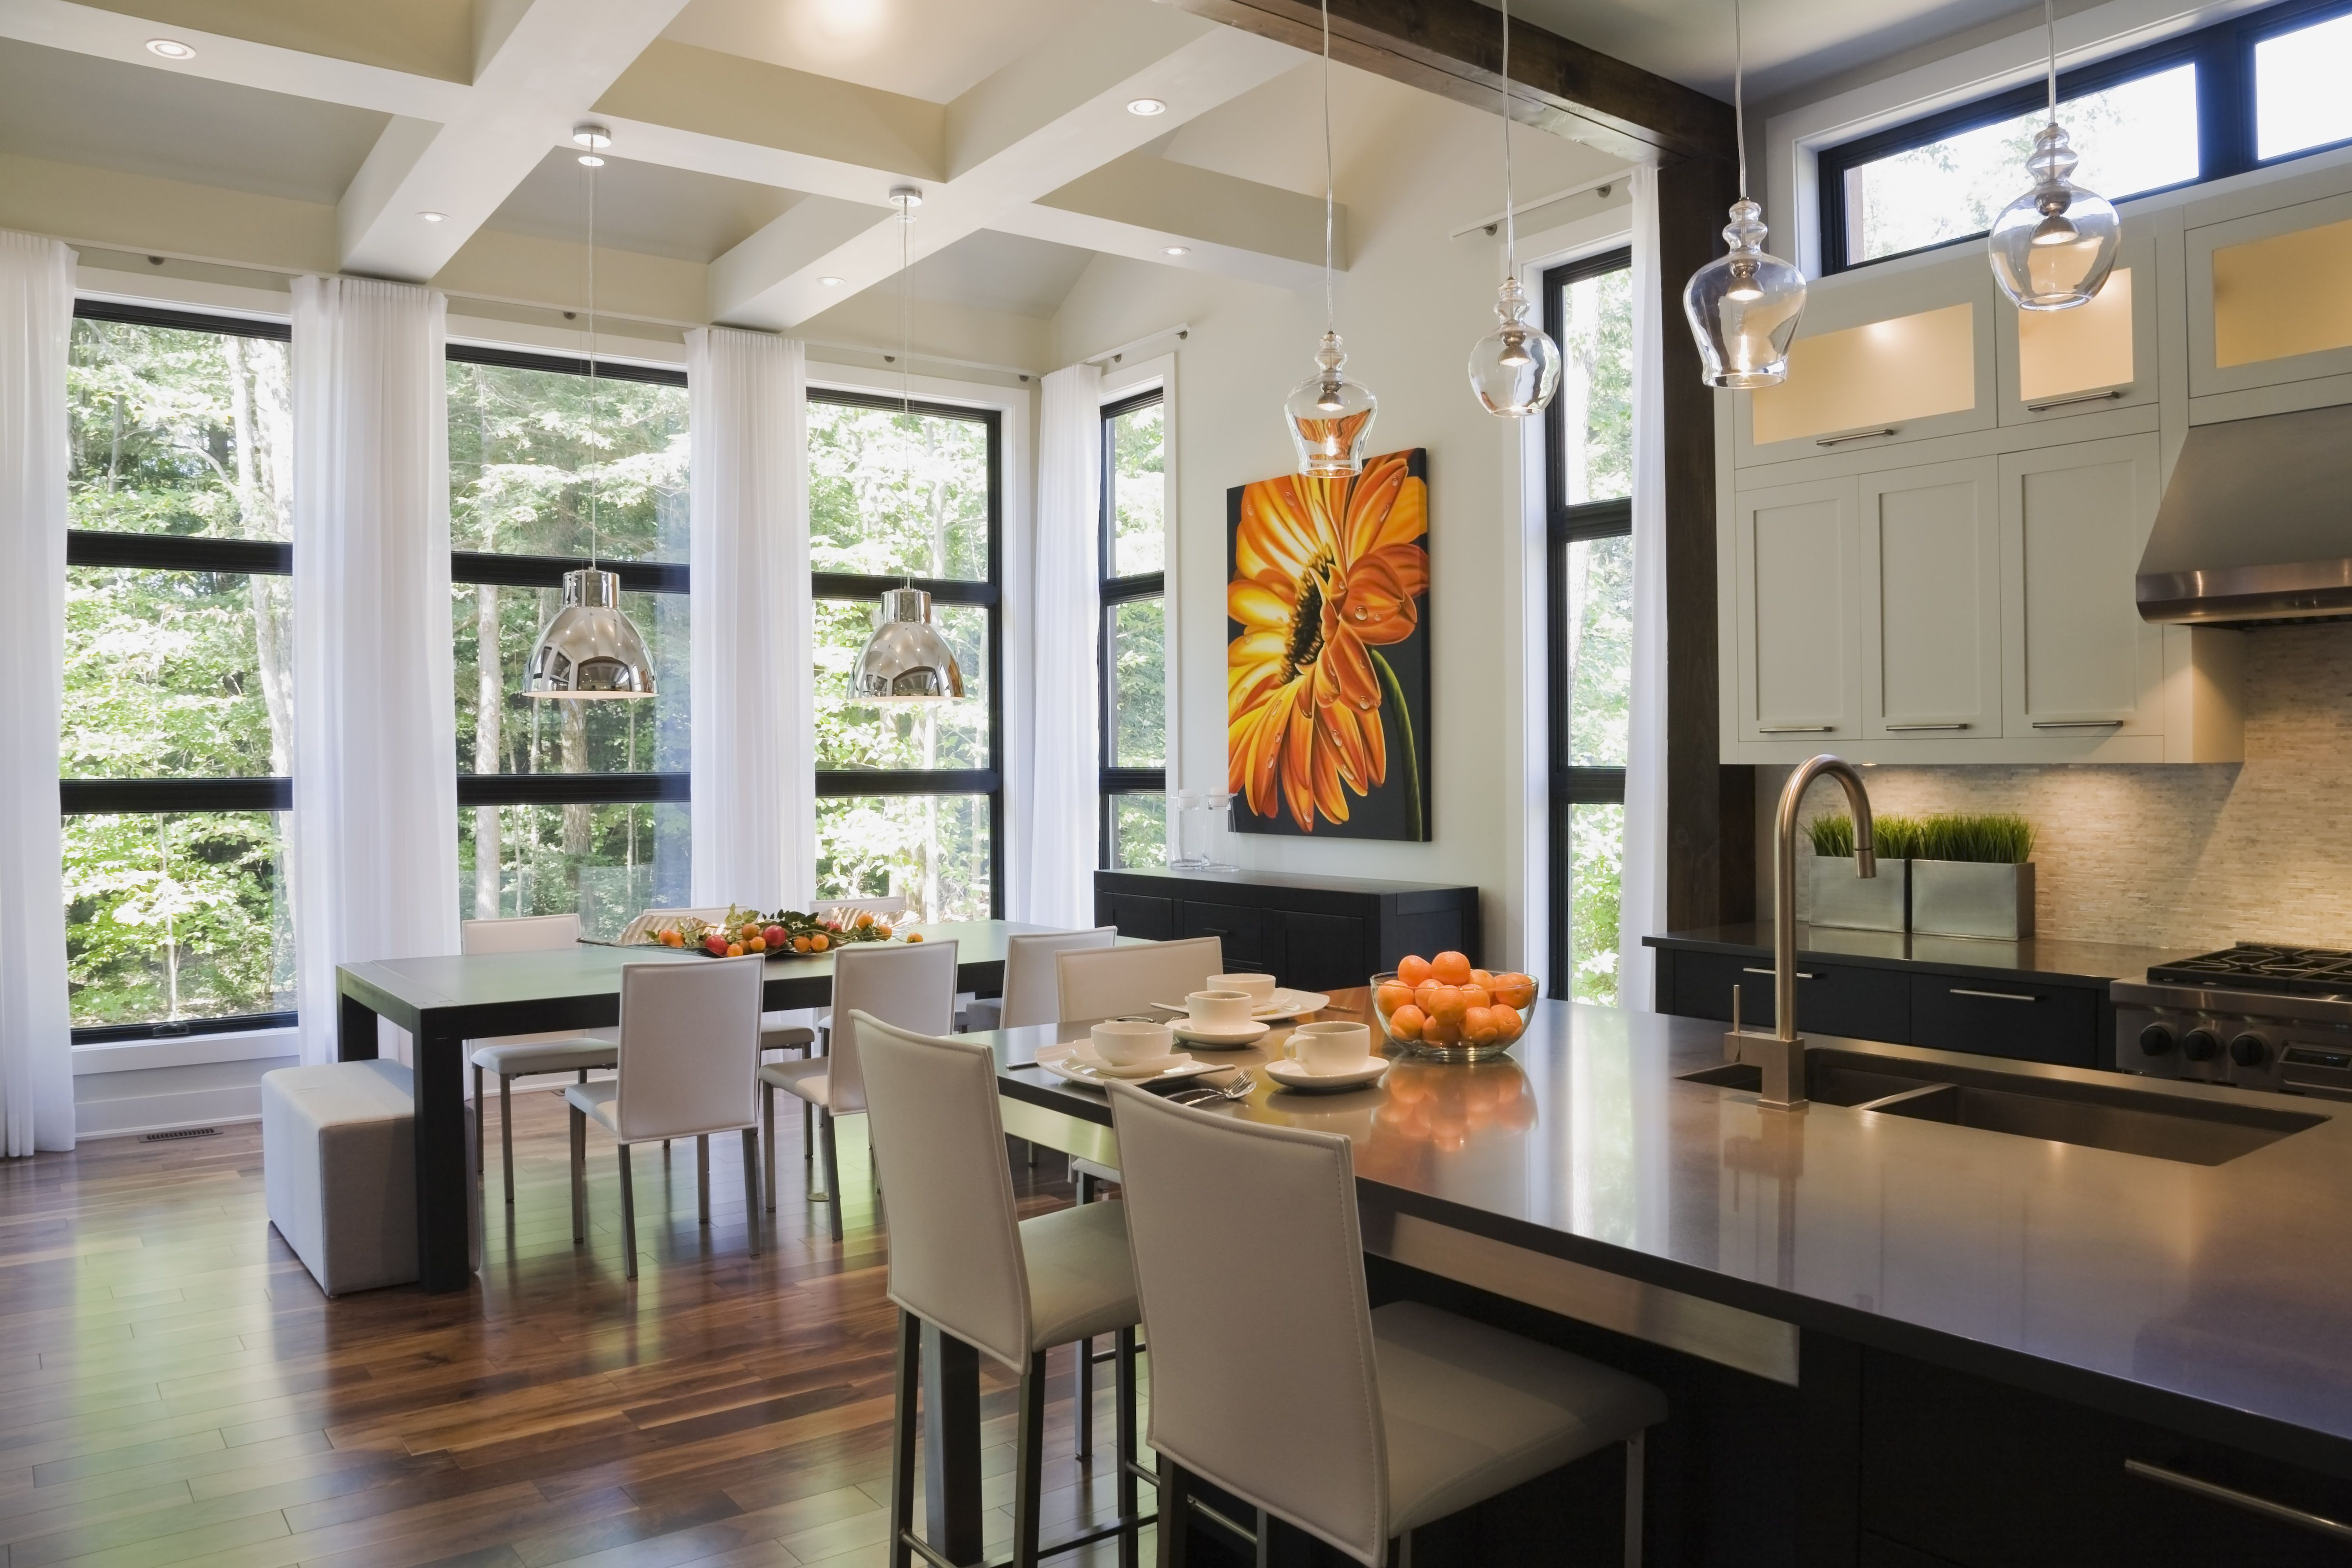 hardwood floor stain and sealer of what you need to know about hardwood floors in kitchens throughout kitchen and dining room inside an upscale residential home quebec canada 519512485 5990dc4622fa3a0010356721